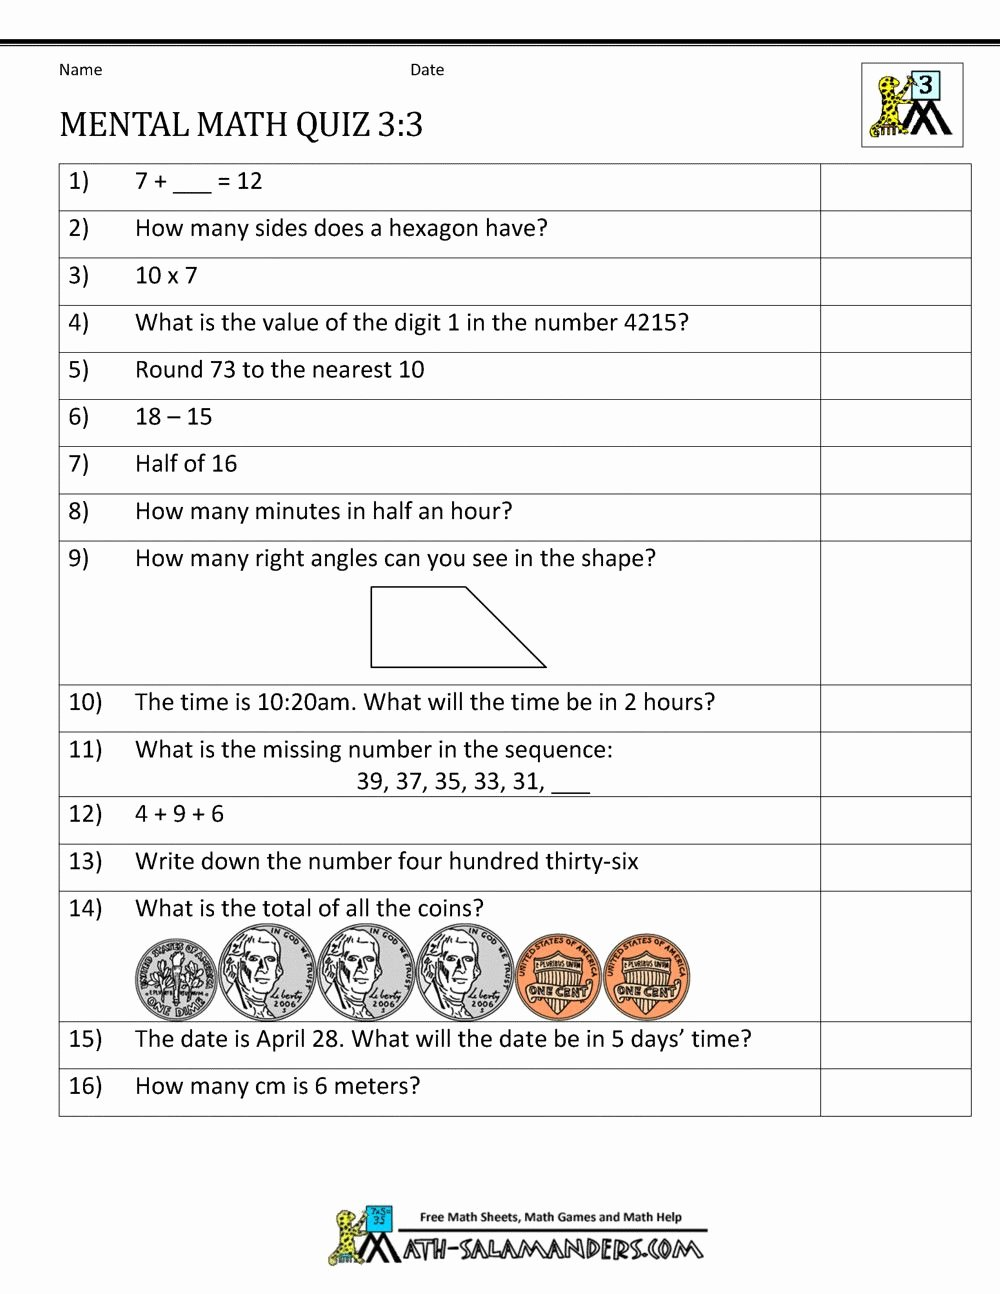 Everyday Mathematics Grade 5 Worksheets New 5 Mental Maths Worksheets for Class 3 2 In 2020